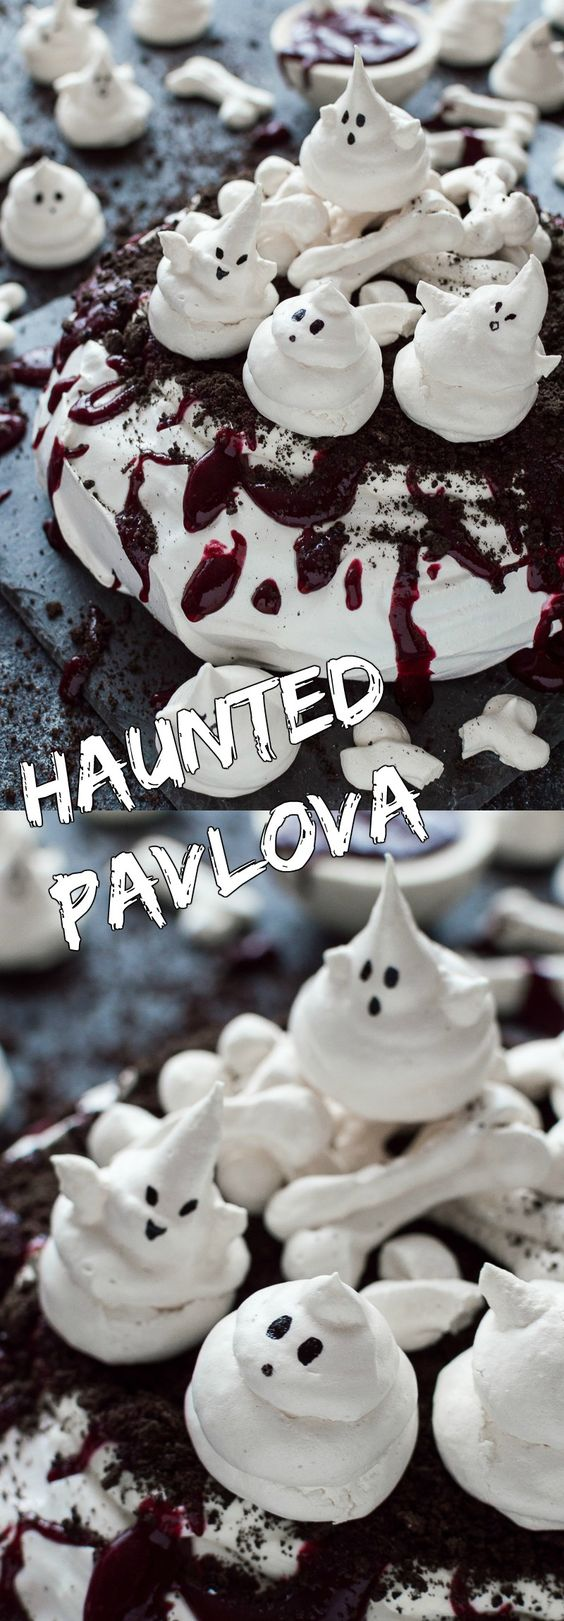 Haunted Halloween pavlova - a spooky, impressive centerpiece with meringue ghosts and bones, Oreo soil and berry coulis blood; it is easier to make than you might think!